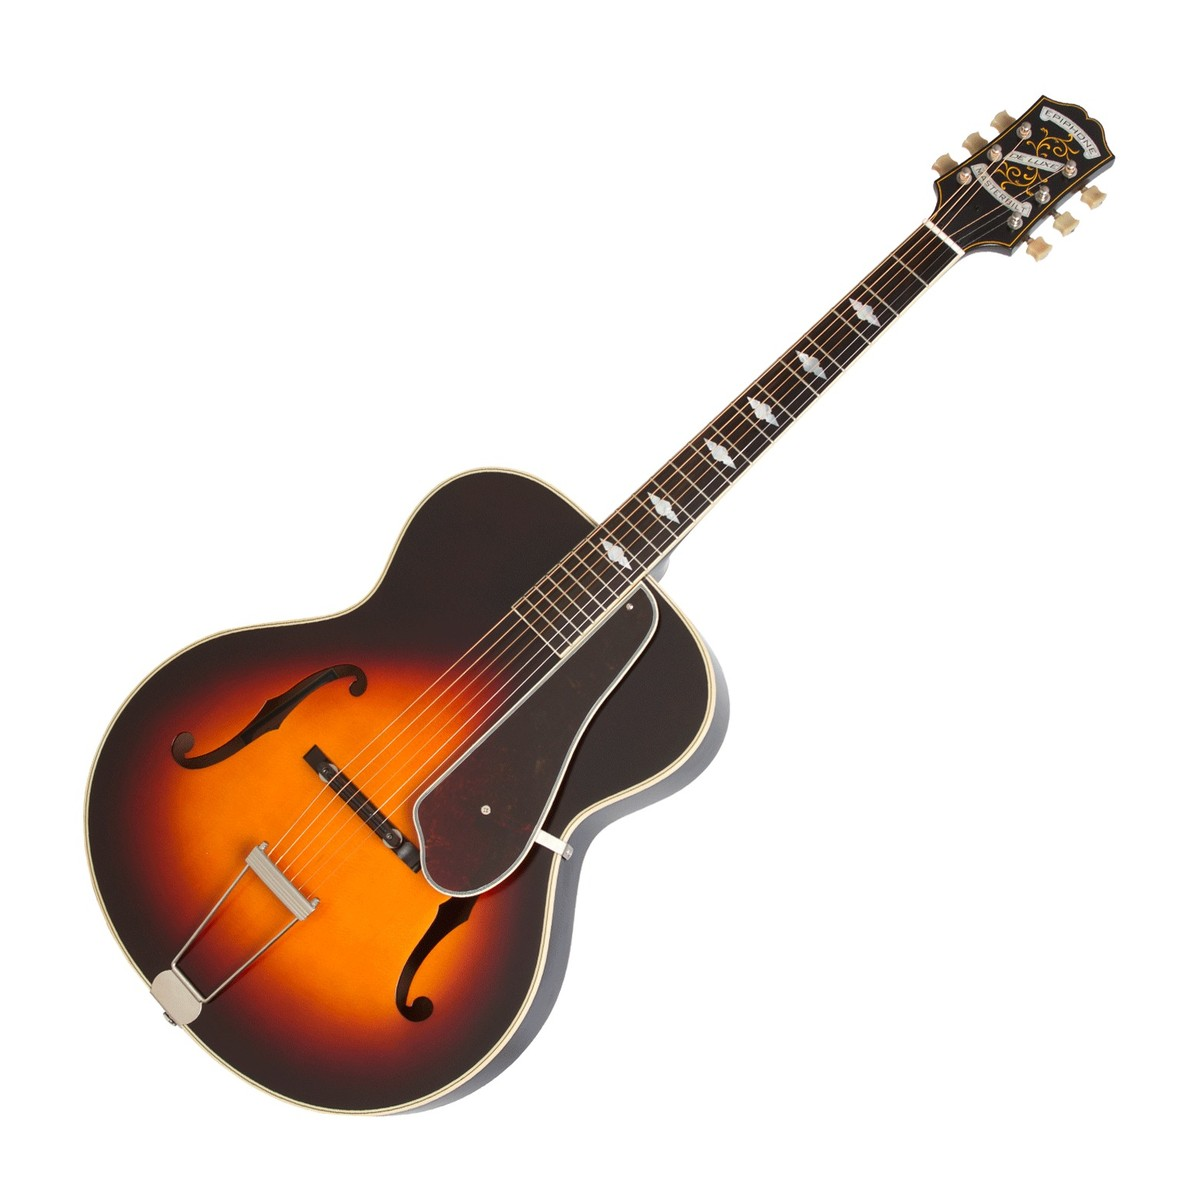 epiphone deluxe classic masterbilt century vintage sunburst at. Black Bedroom Furniture Sets. Home Design Ideas